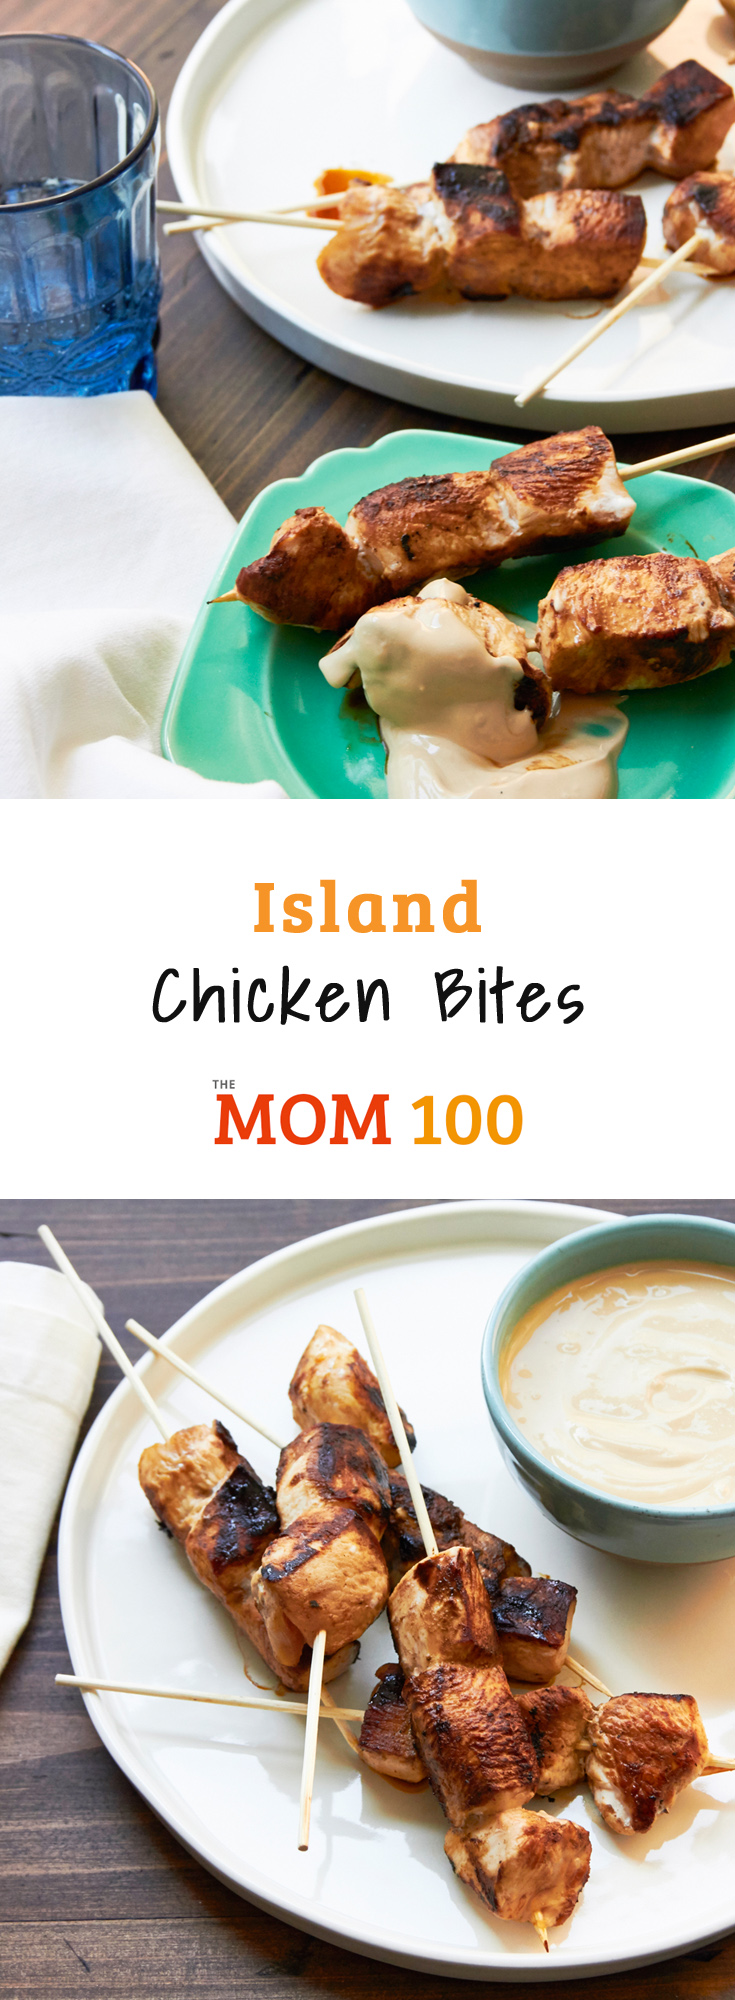 Island Chicken Bites / These chicken skewers have flavors inspired by the West Indies, but no claims to authenticity (said the girl from Manhattan).